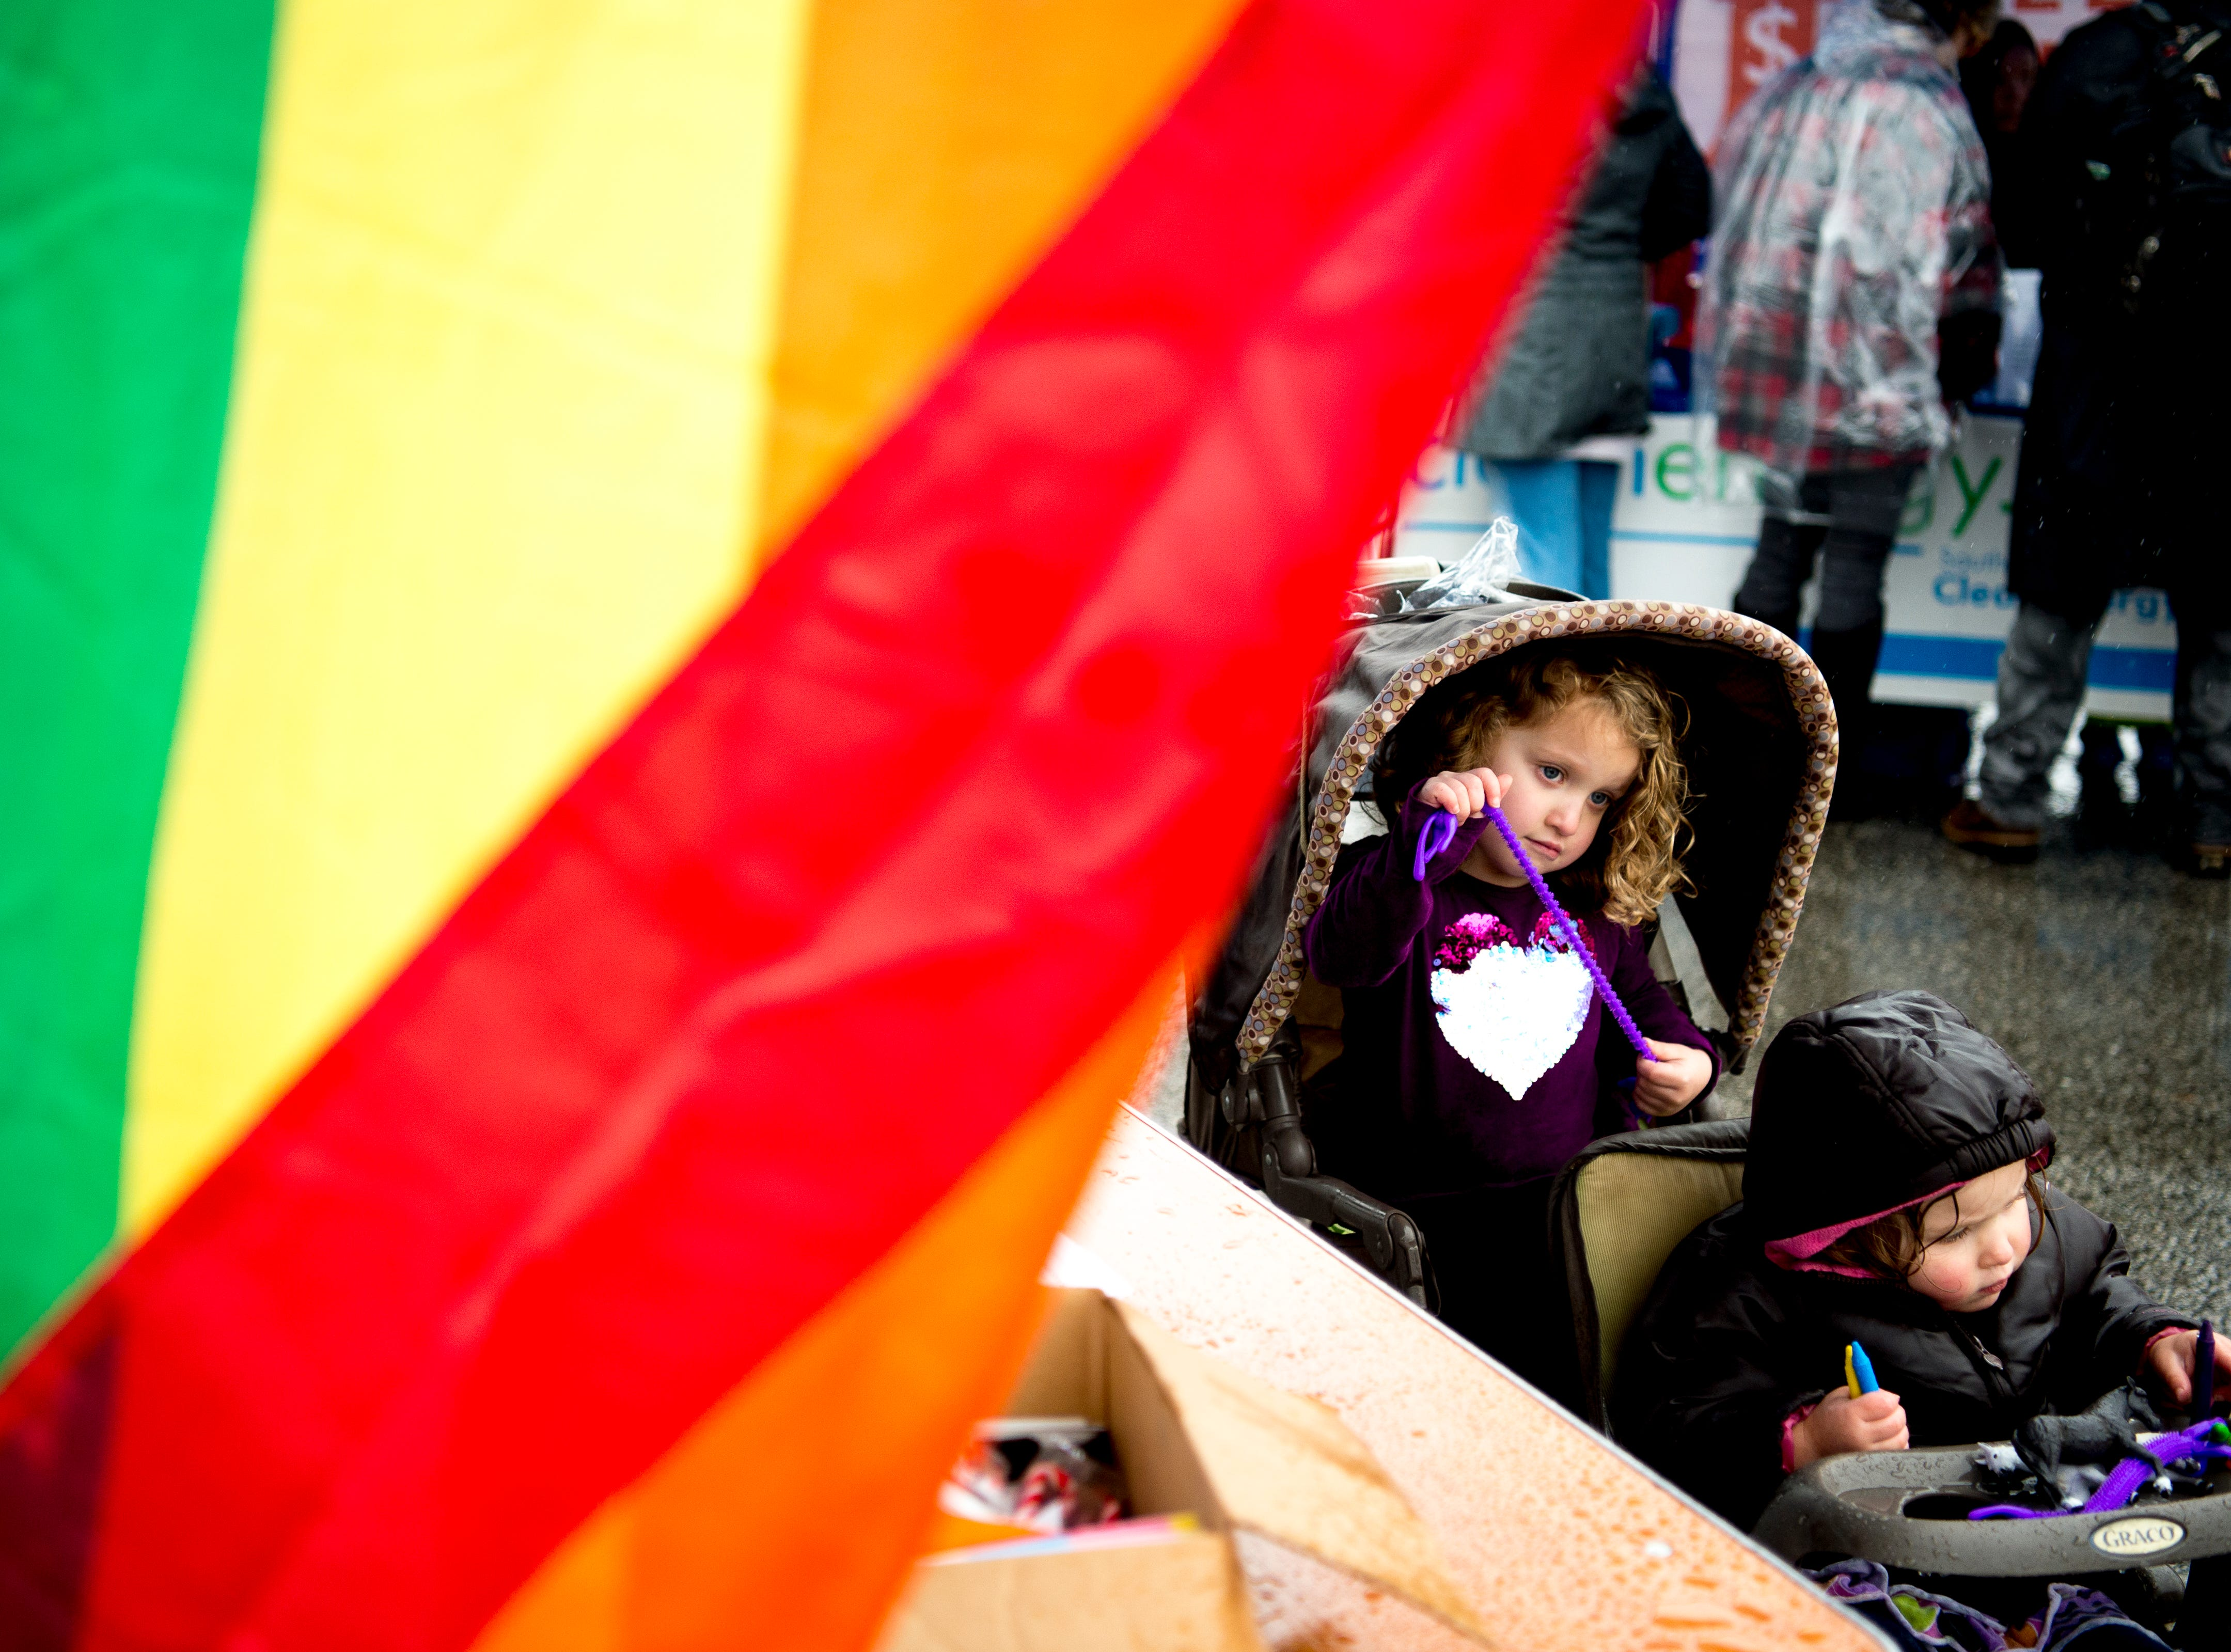 Kids stay busy under a tent at the 2019 Knoxville Women's March at Chilhowee Park in Knoxville, Tennessee on Saturday, January 19, 2019.